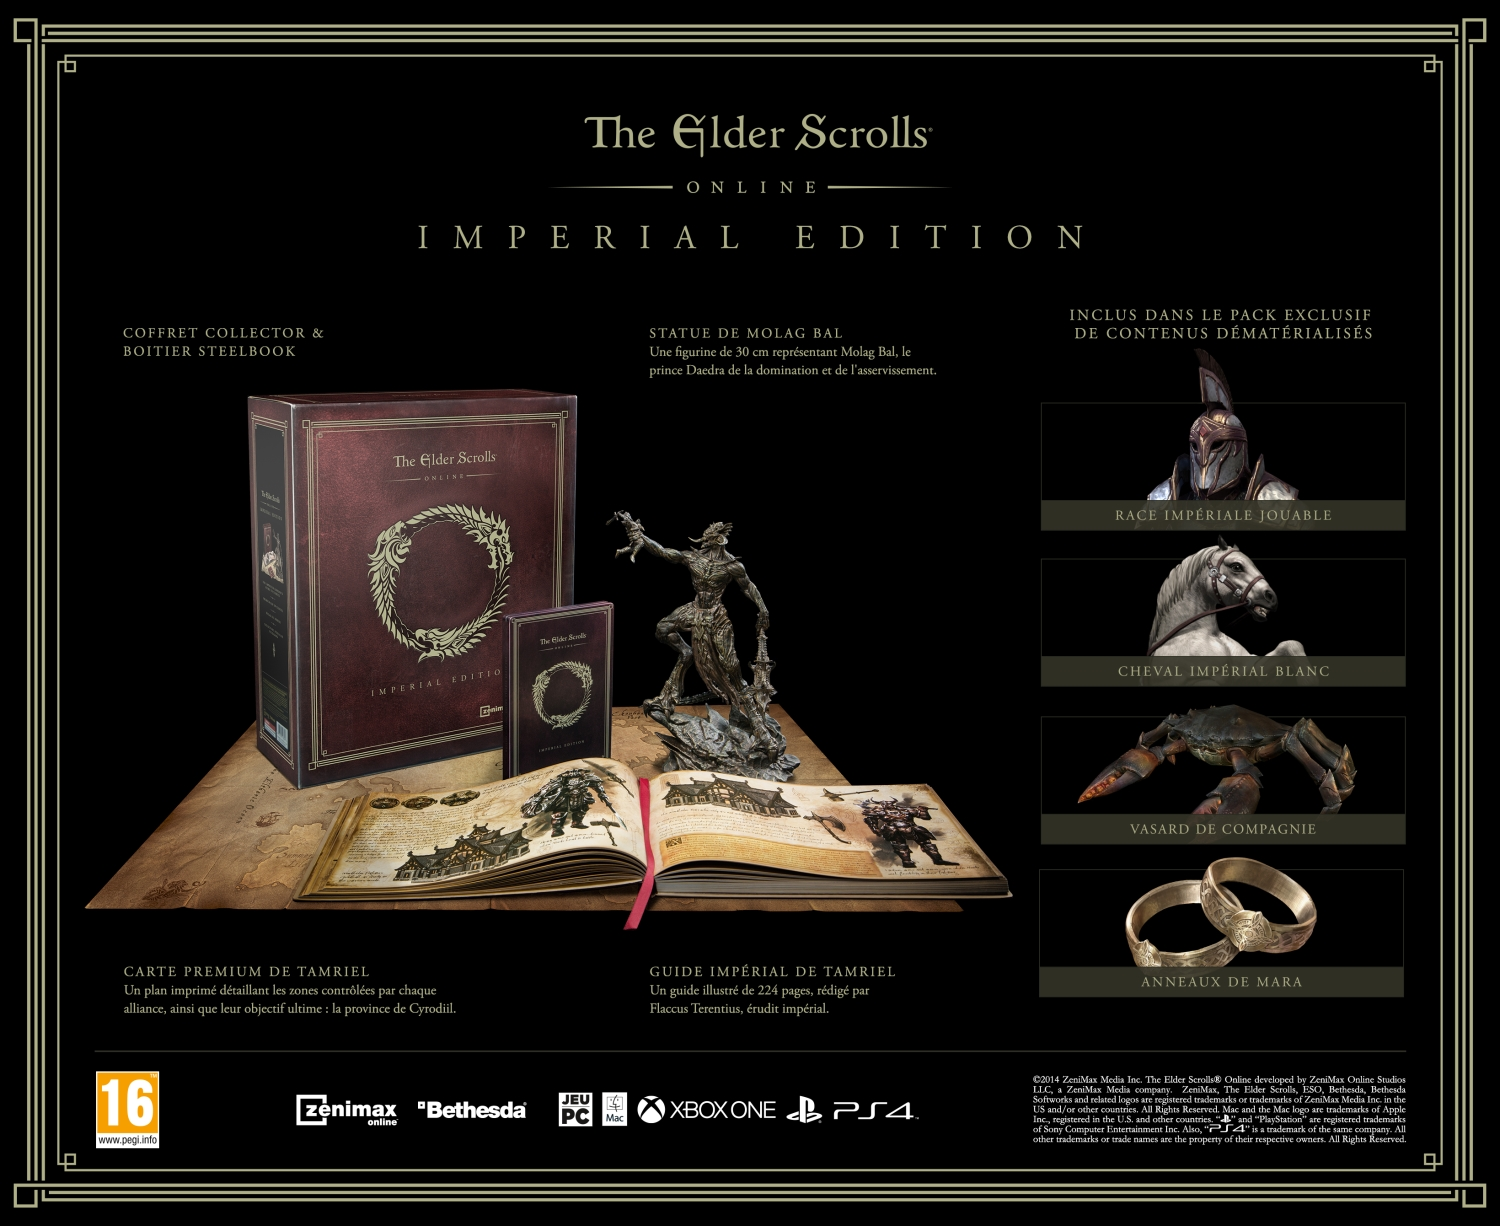 the-elder-scrolls-online-imperial-edition